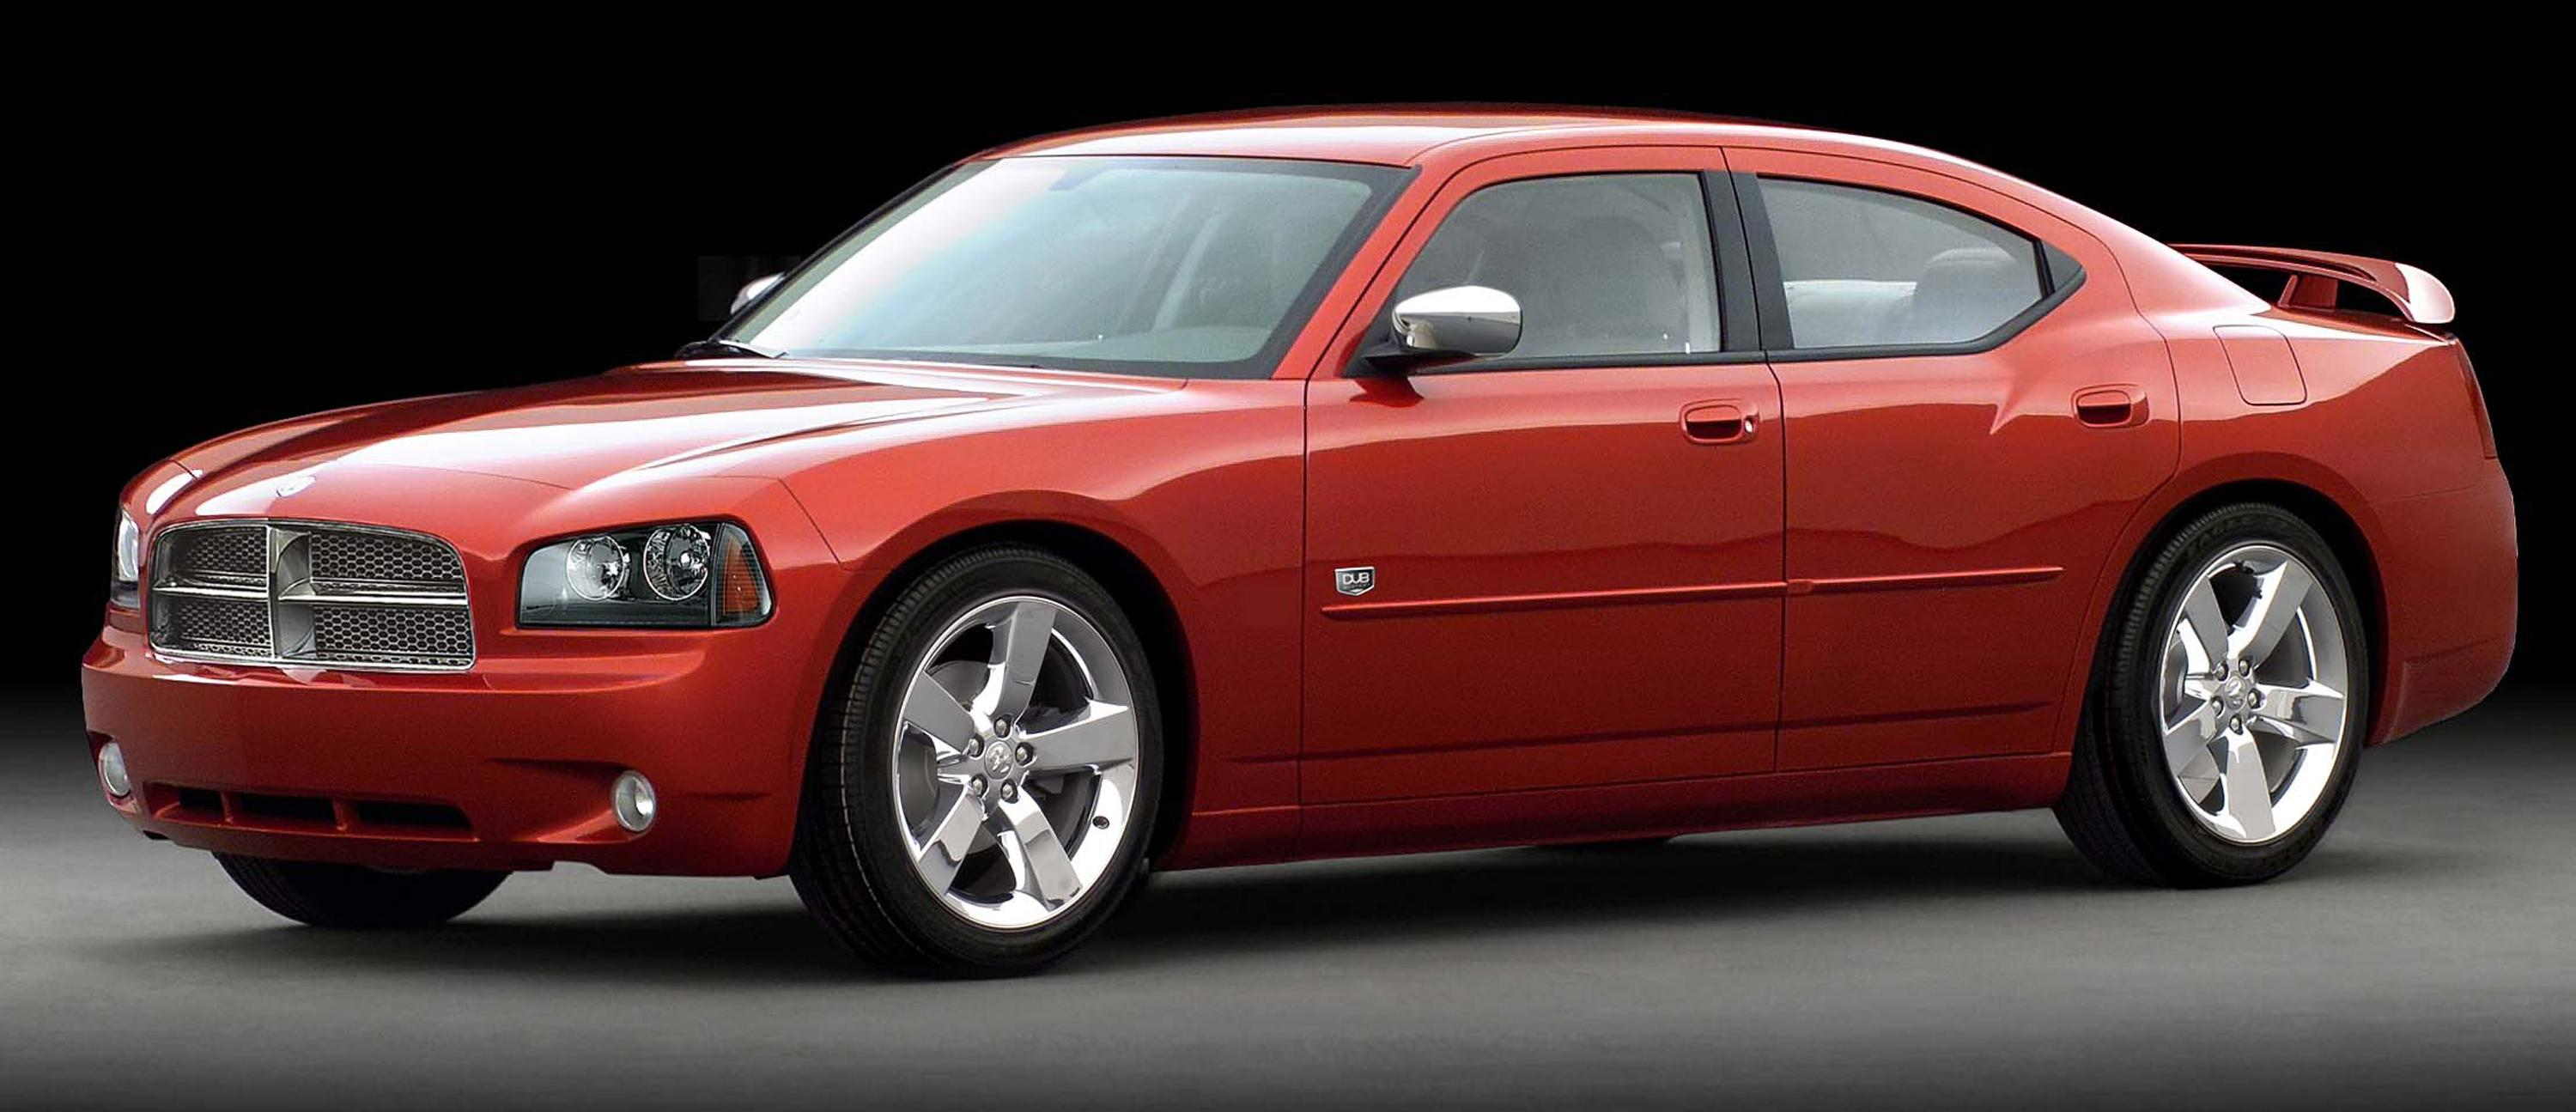 2008 chrysler 300 and dodge charger dub edition review top speed. Black Bedroom Furniture Sets. Home Design Ideas